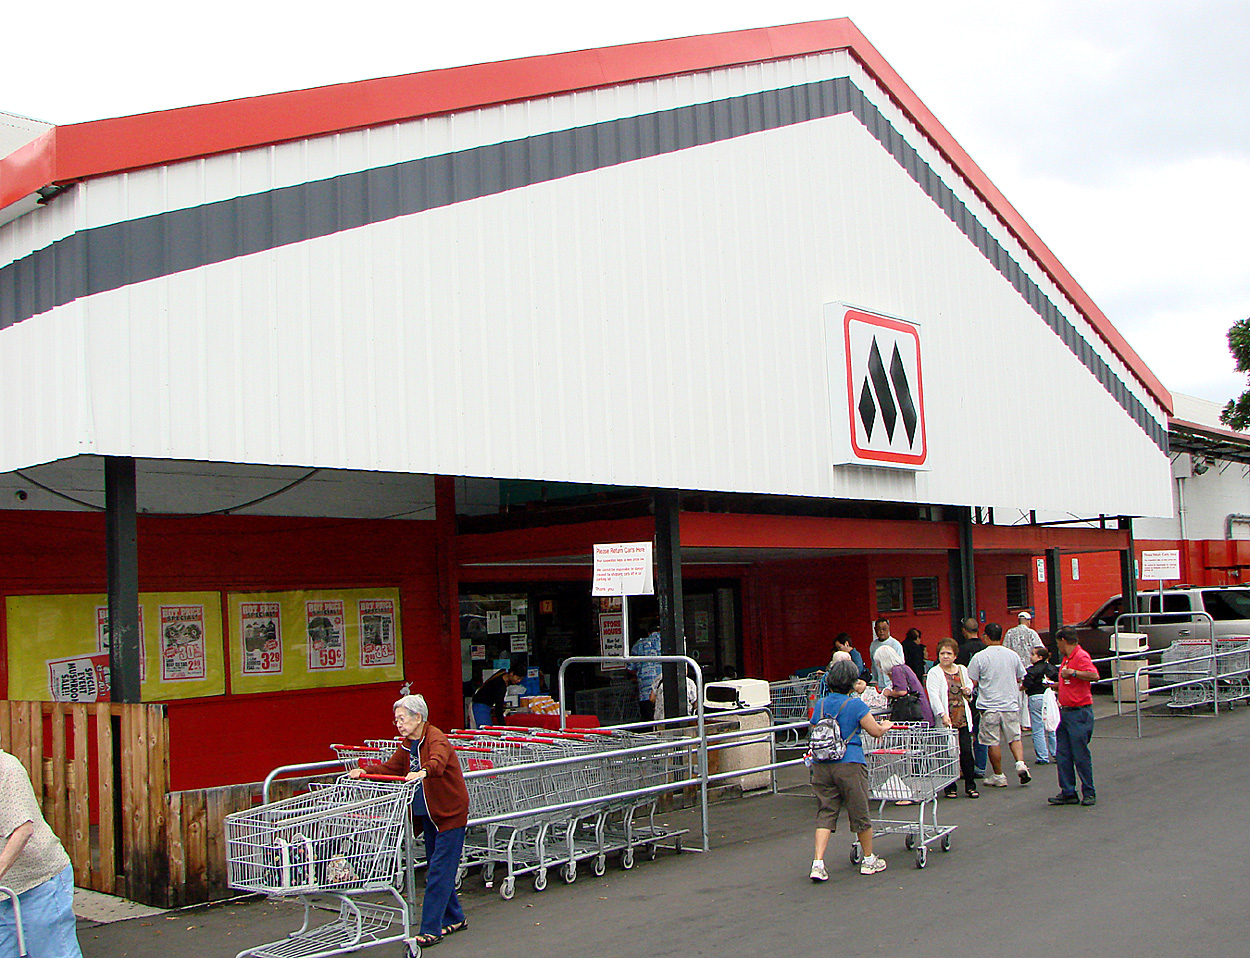 Marukai Store Hours Find Marukai Hours. Established in , Marukai Corporation has locations in California and Hawaii and was the first international Japan-based retailer to offer a wholesale market and membership system.